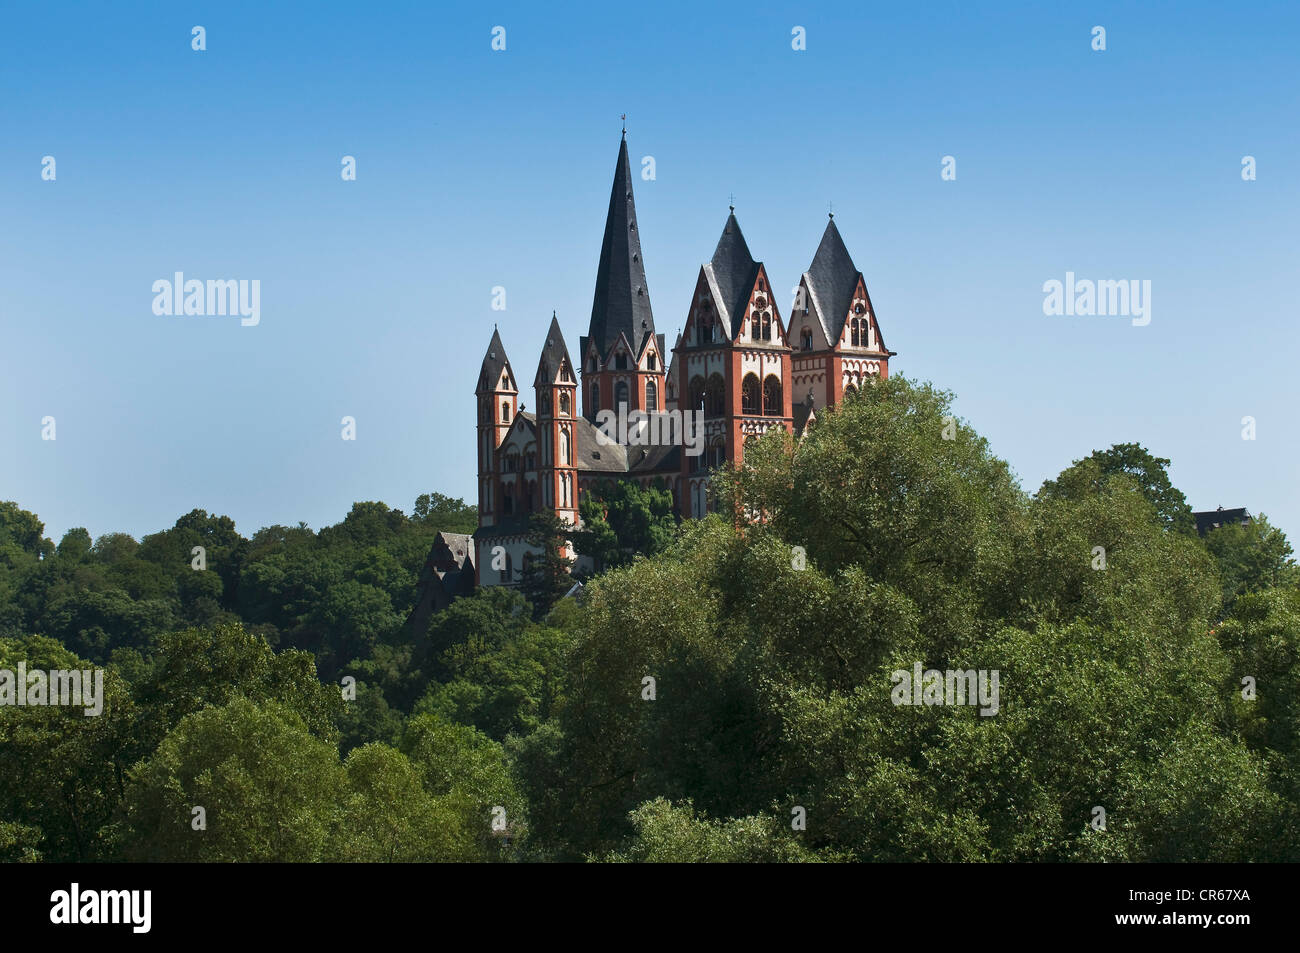 Limburg Cathedral, St. George's Cathedral, late Romanesque, Limburg an der Lahn, Limburg, Hesse, Germany, Europe - Stock Image